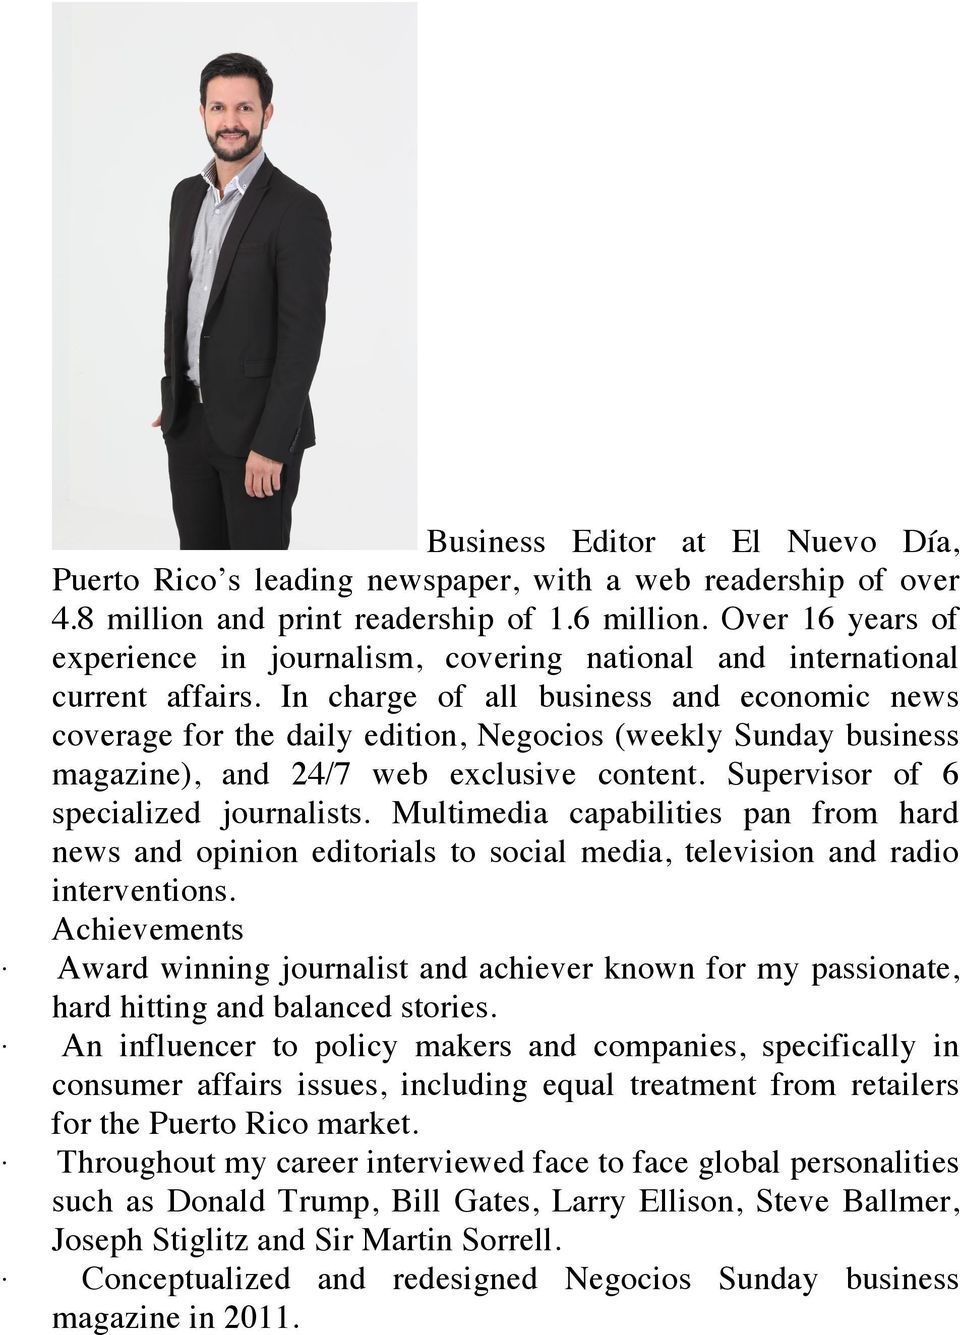 In charge of all business and economic news coverage for the daily edition, Negocios (weekly Sunday business magazine), and 24/7 web exclusive content. Supervisor of 6 specialized journalists.